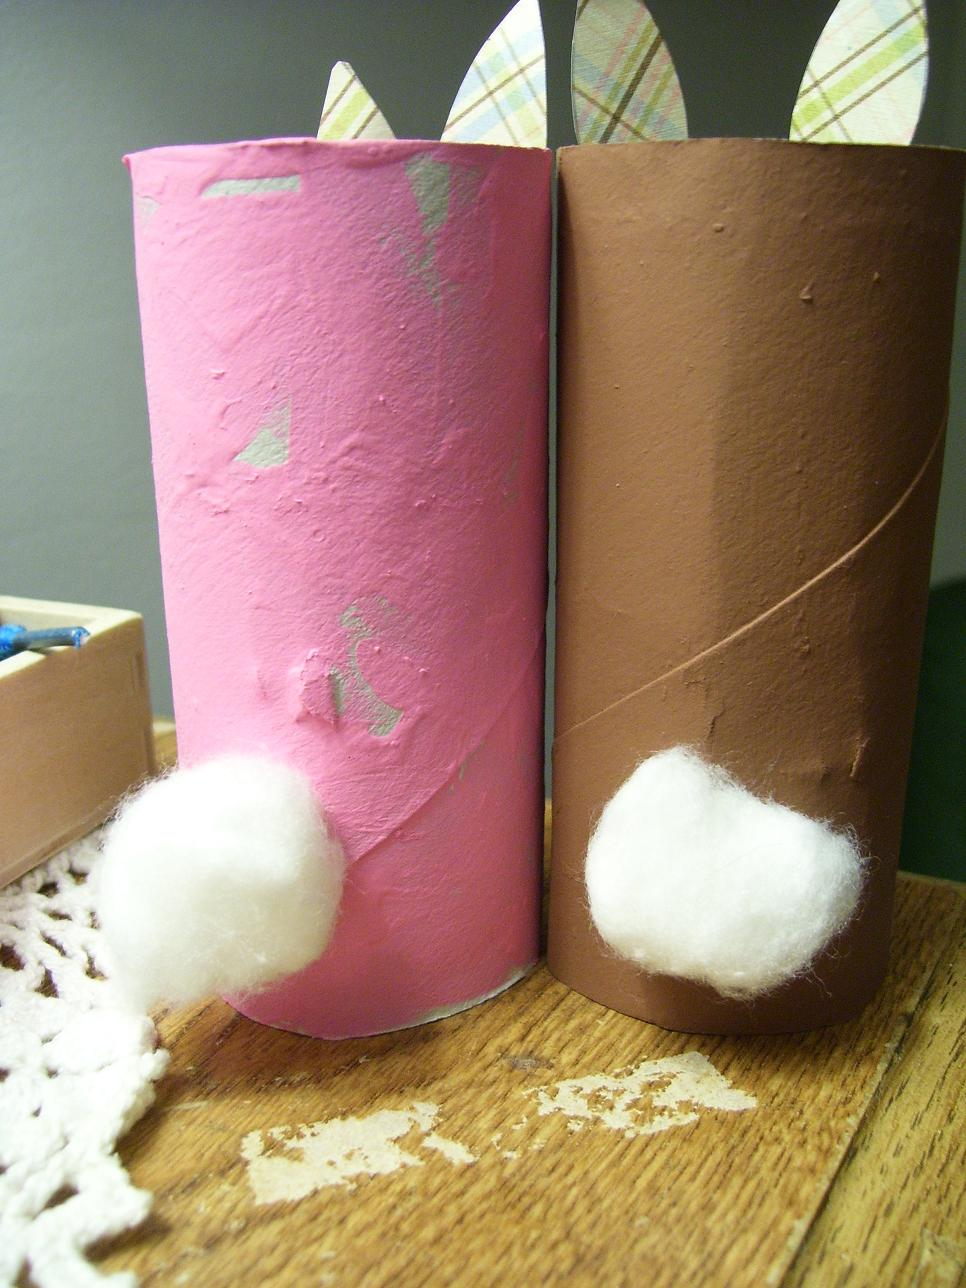 The dirt under my nails reuse reduce recycle re for Recycling toilet paper tubes